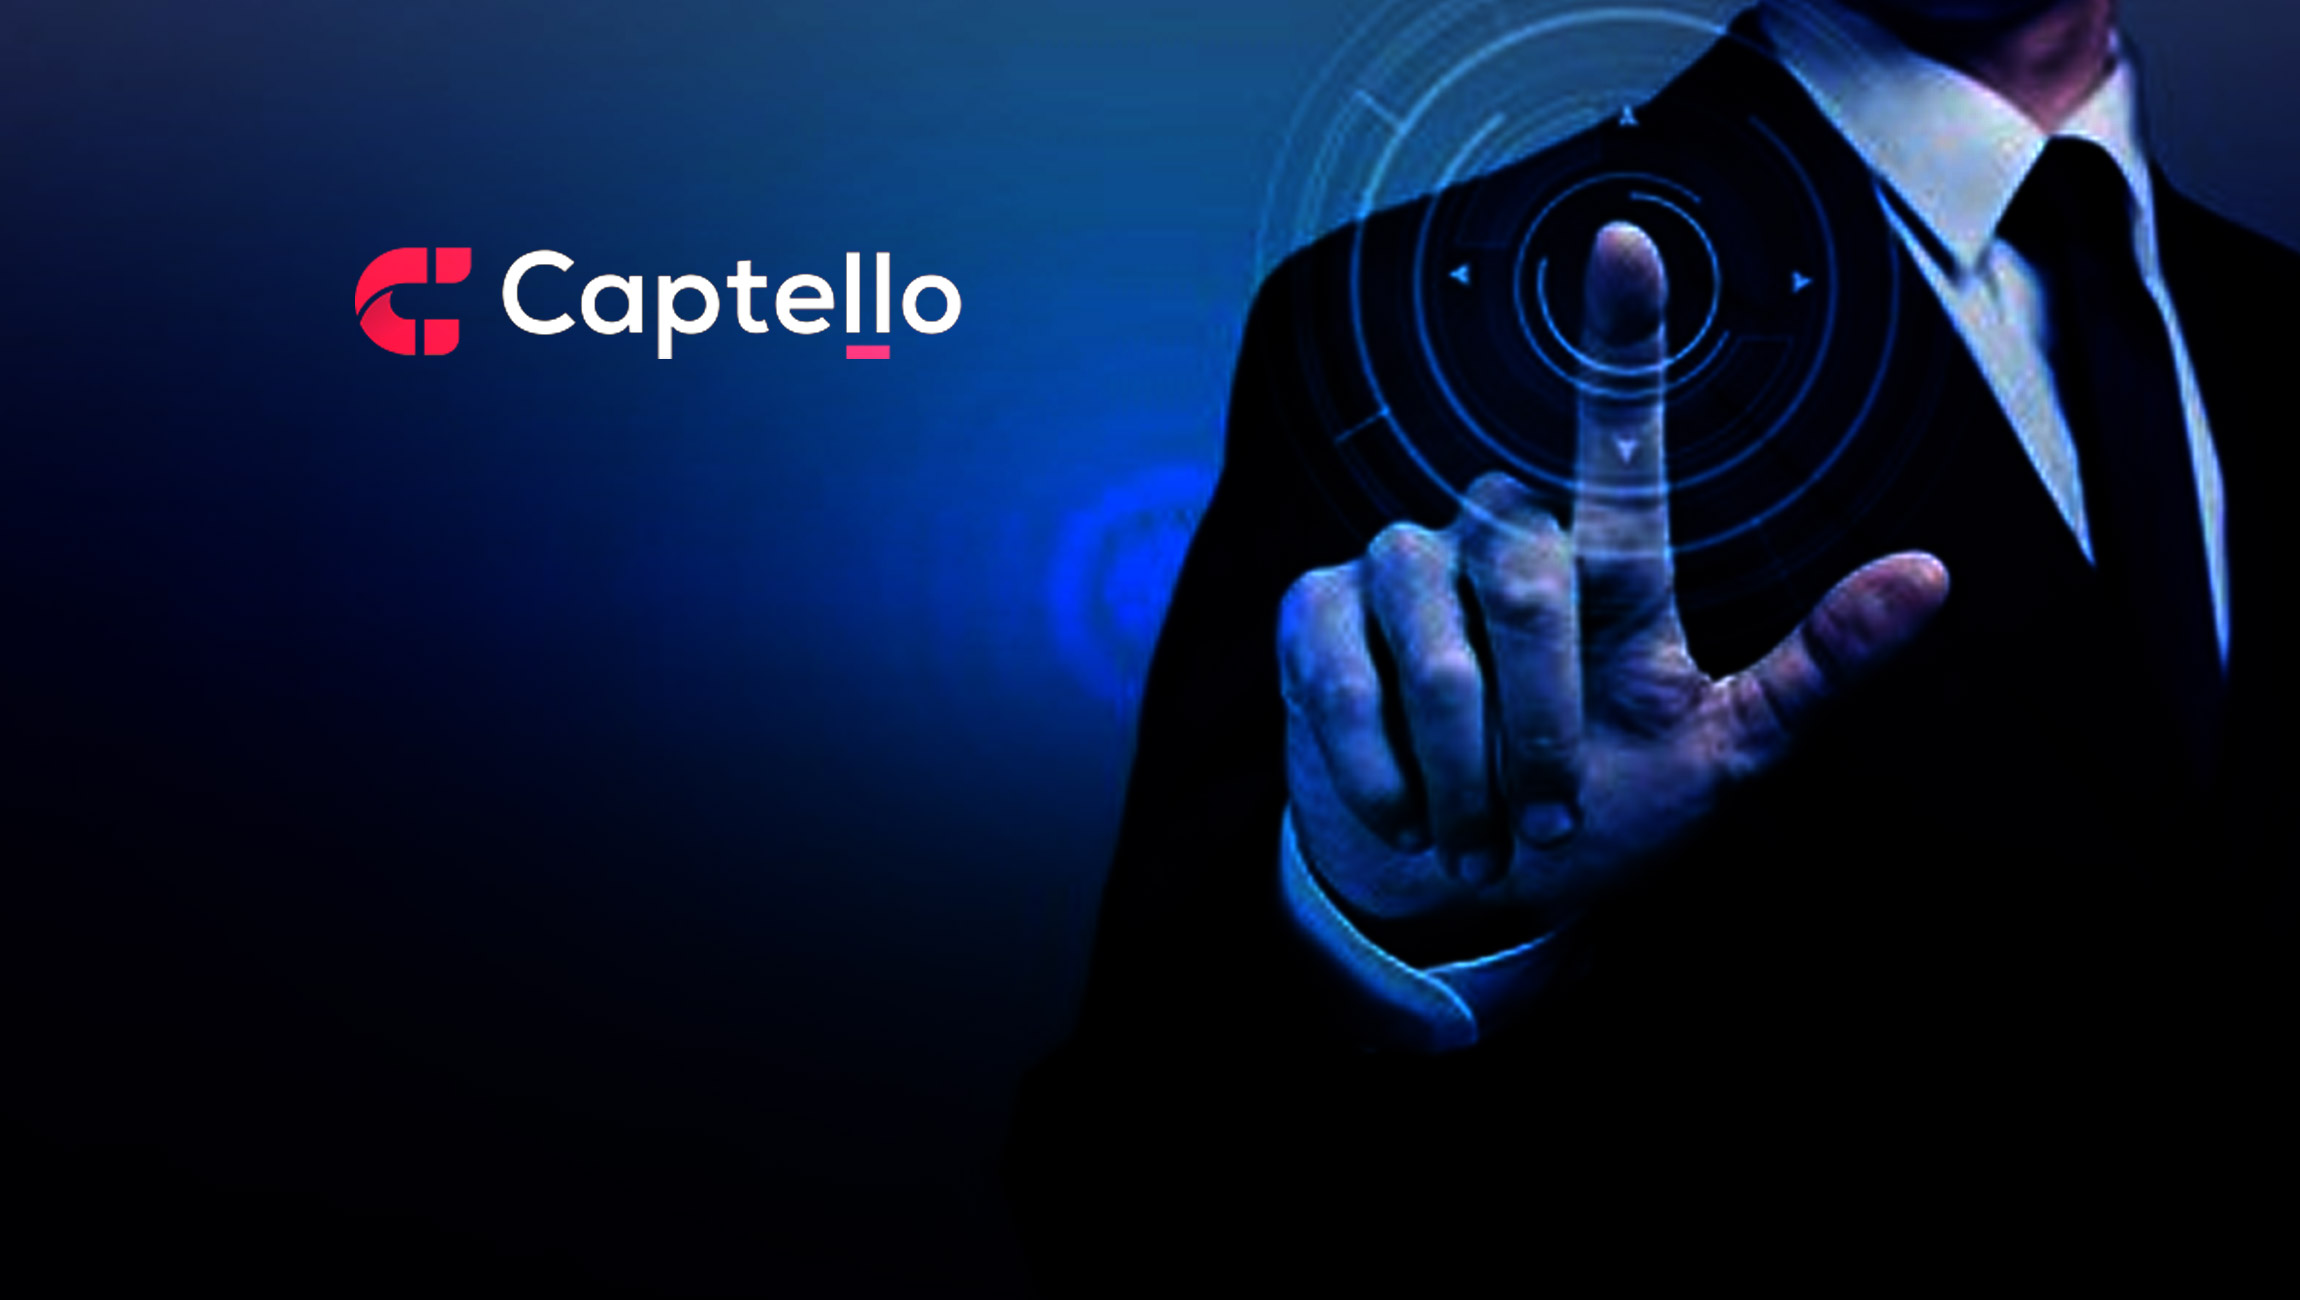 Captello Supports Data Capture & Gamification with WeChat